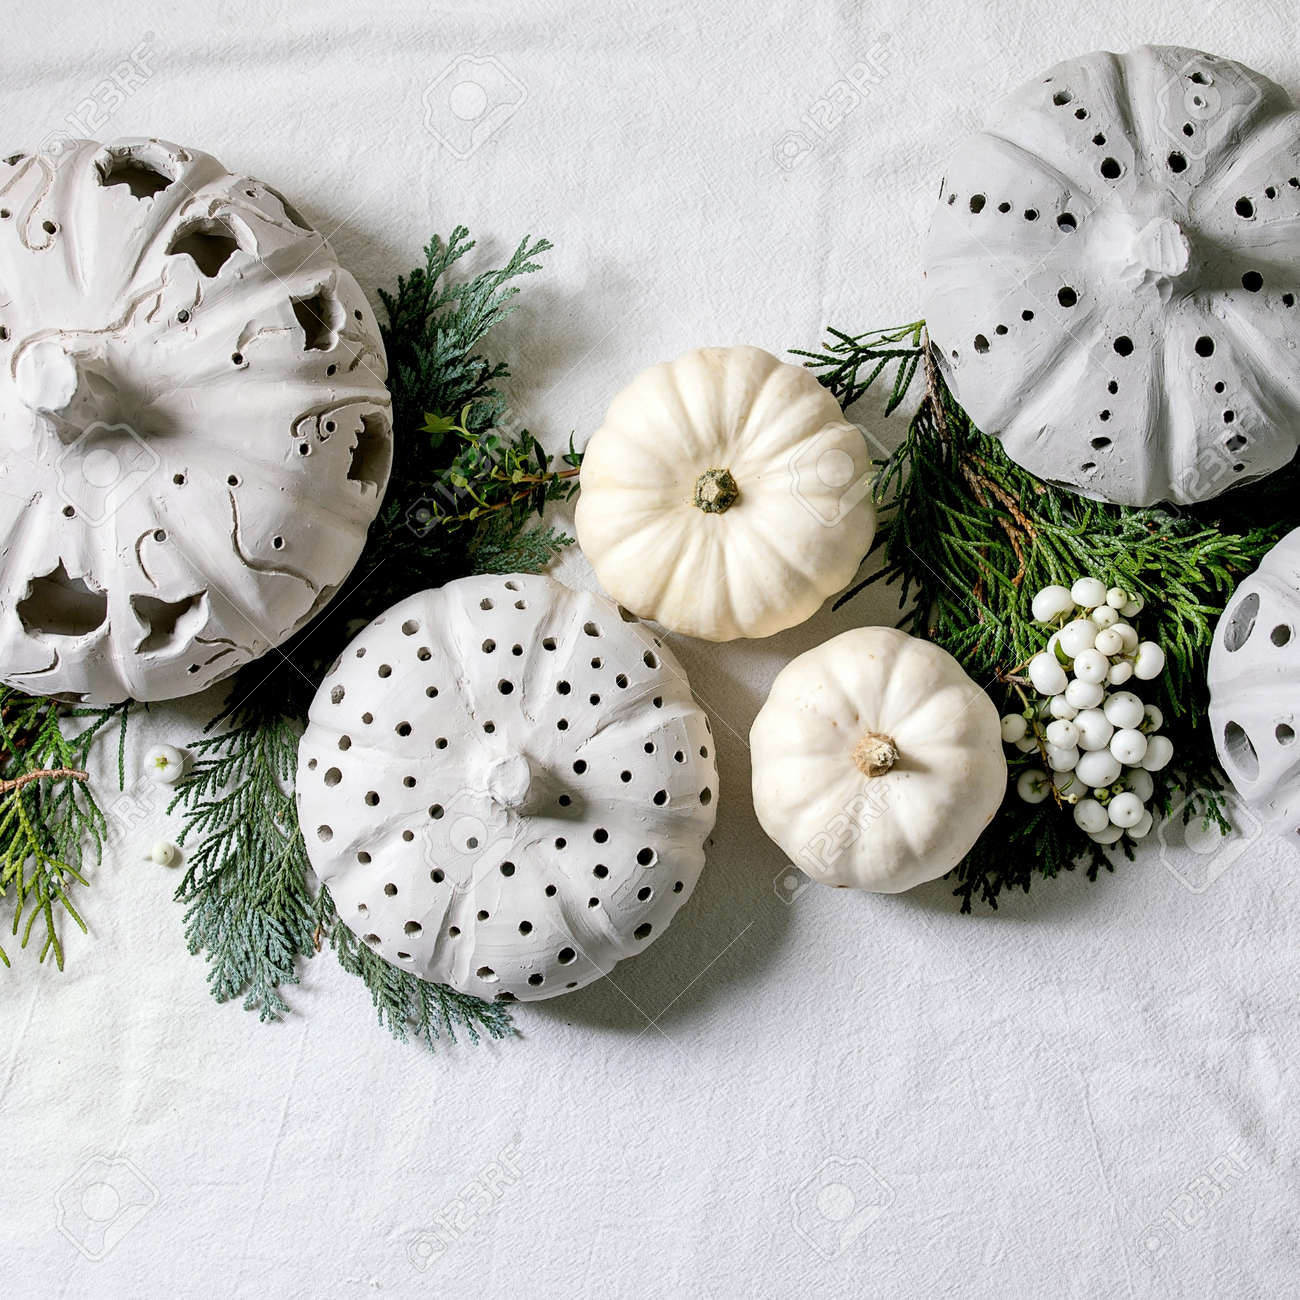 Holiday decoration with white decorative pumpkins, craft clay pumpkins, thuja branches over old wooden background. Flat lay, copy space. Square - 171902844